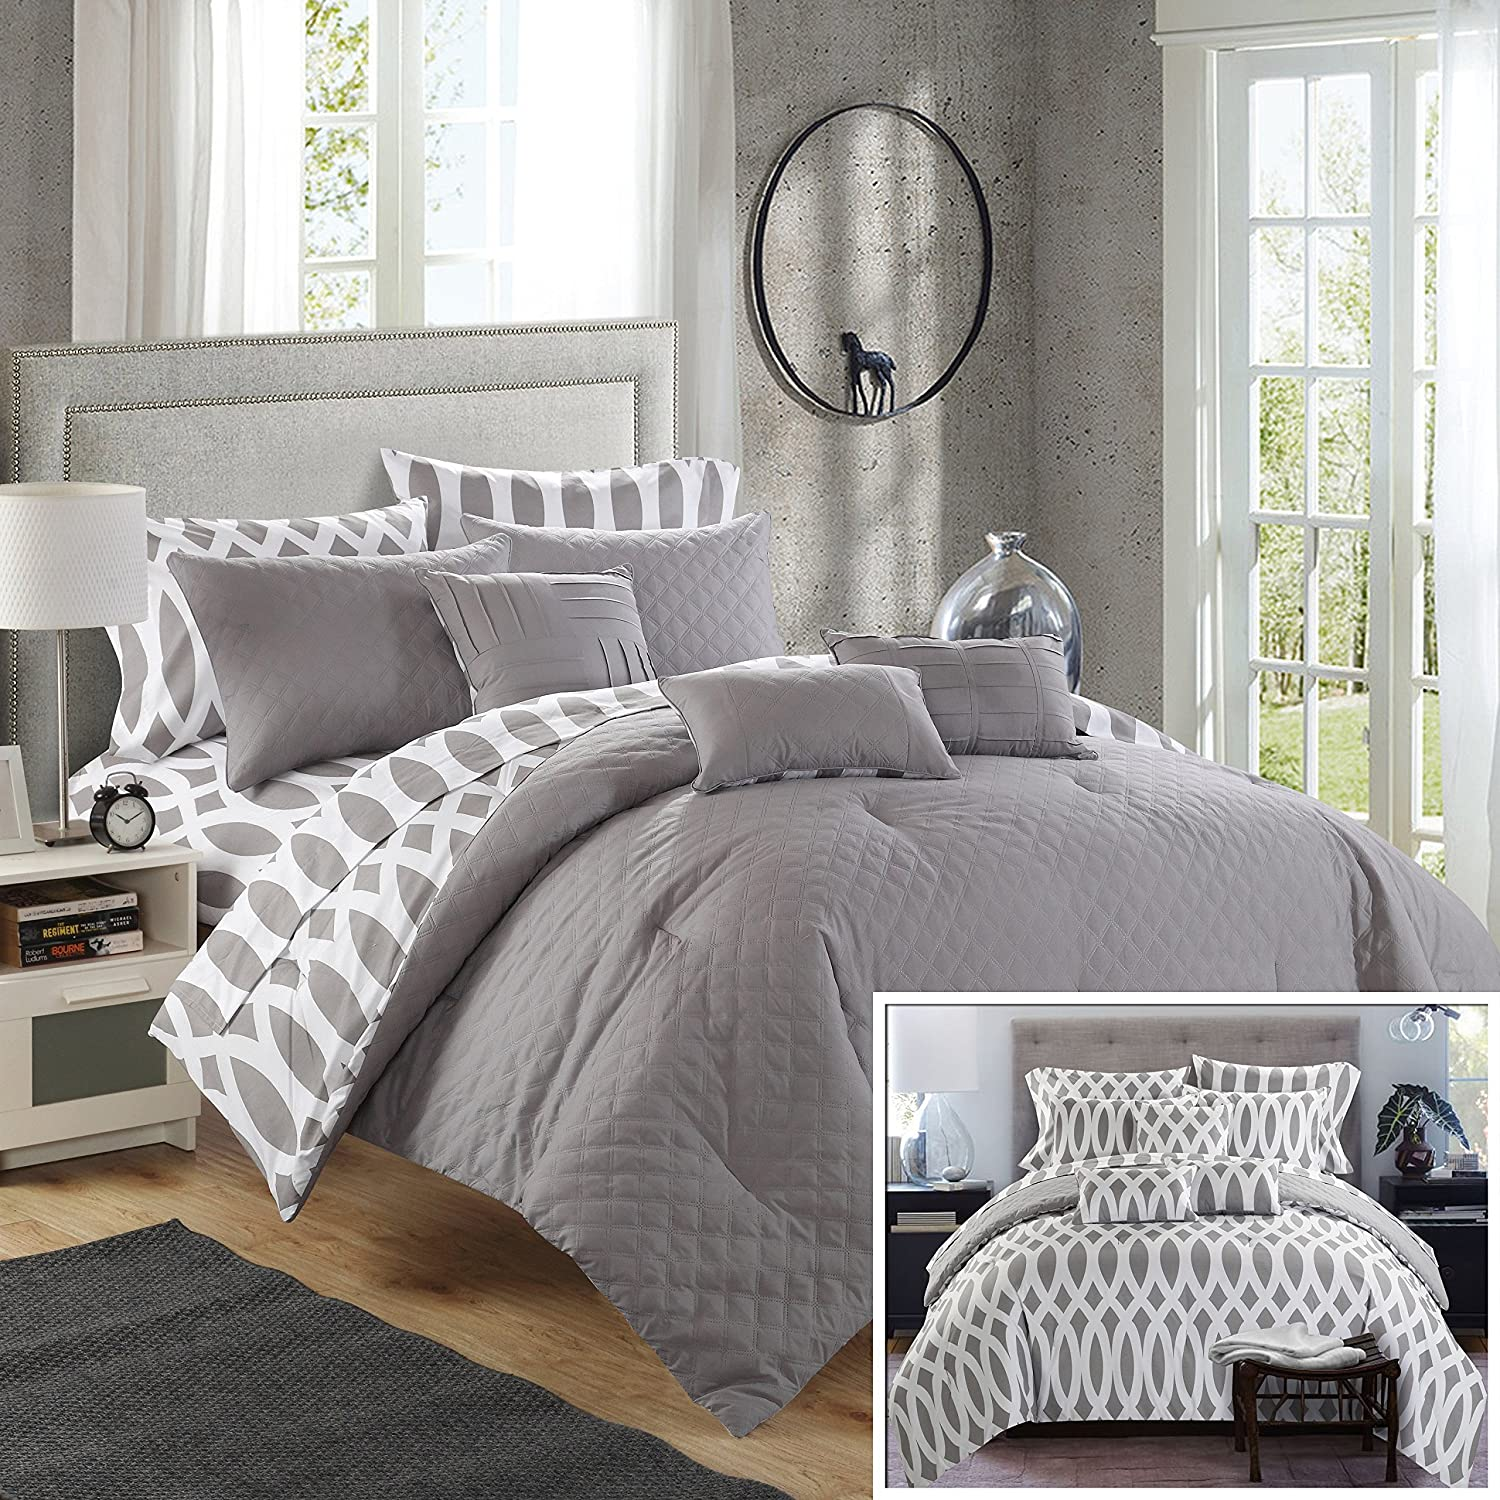 Chic Home 10 Piece Comforter Set Including 4 Piece Sheets Set, Queen, Grey